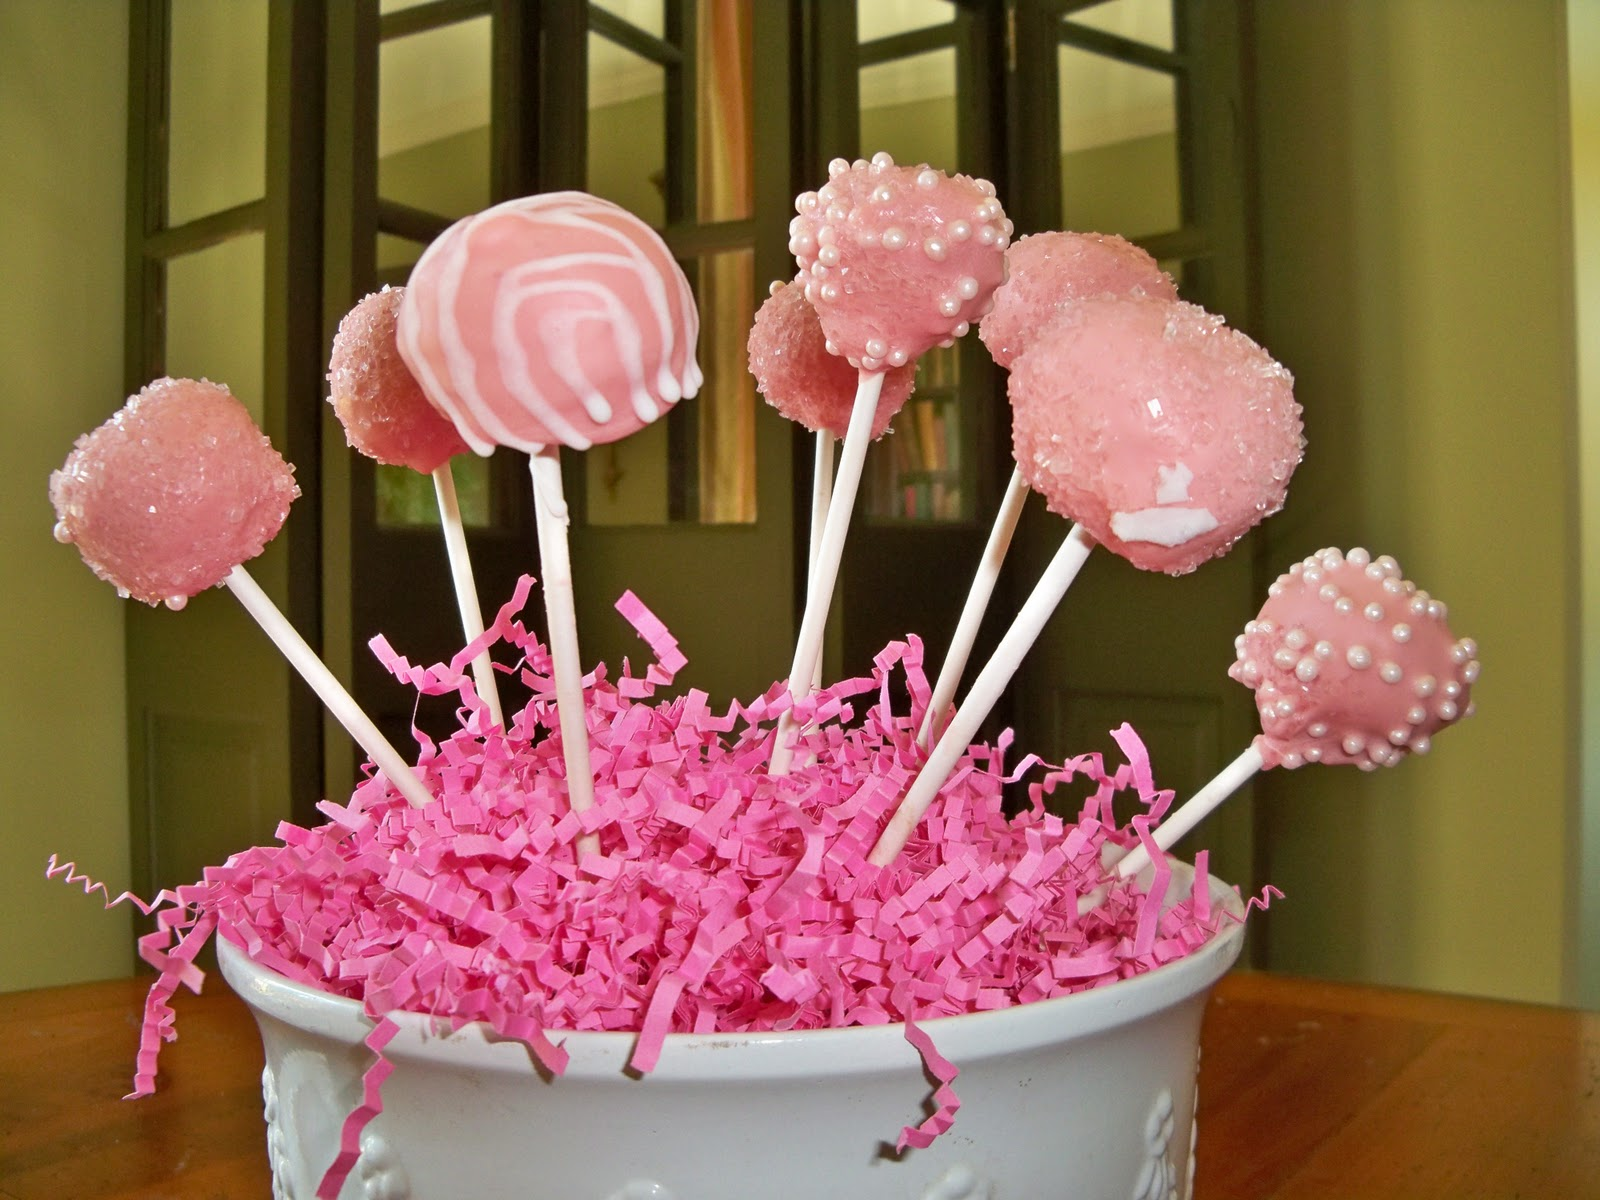 How To Make A Cake Pop Stand With Styrofoam